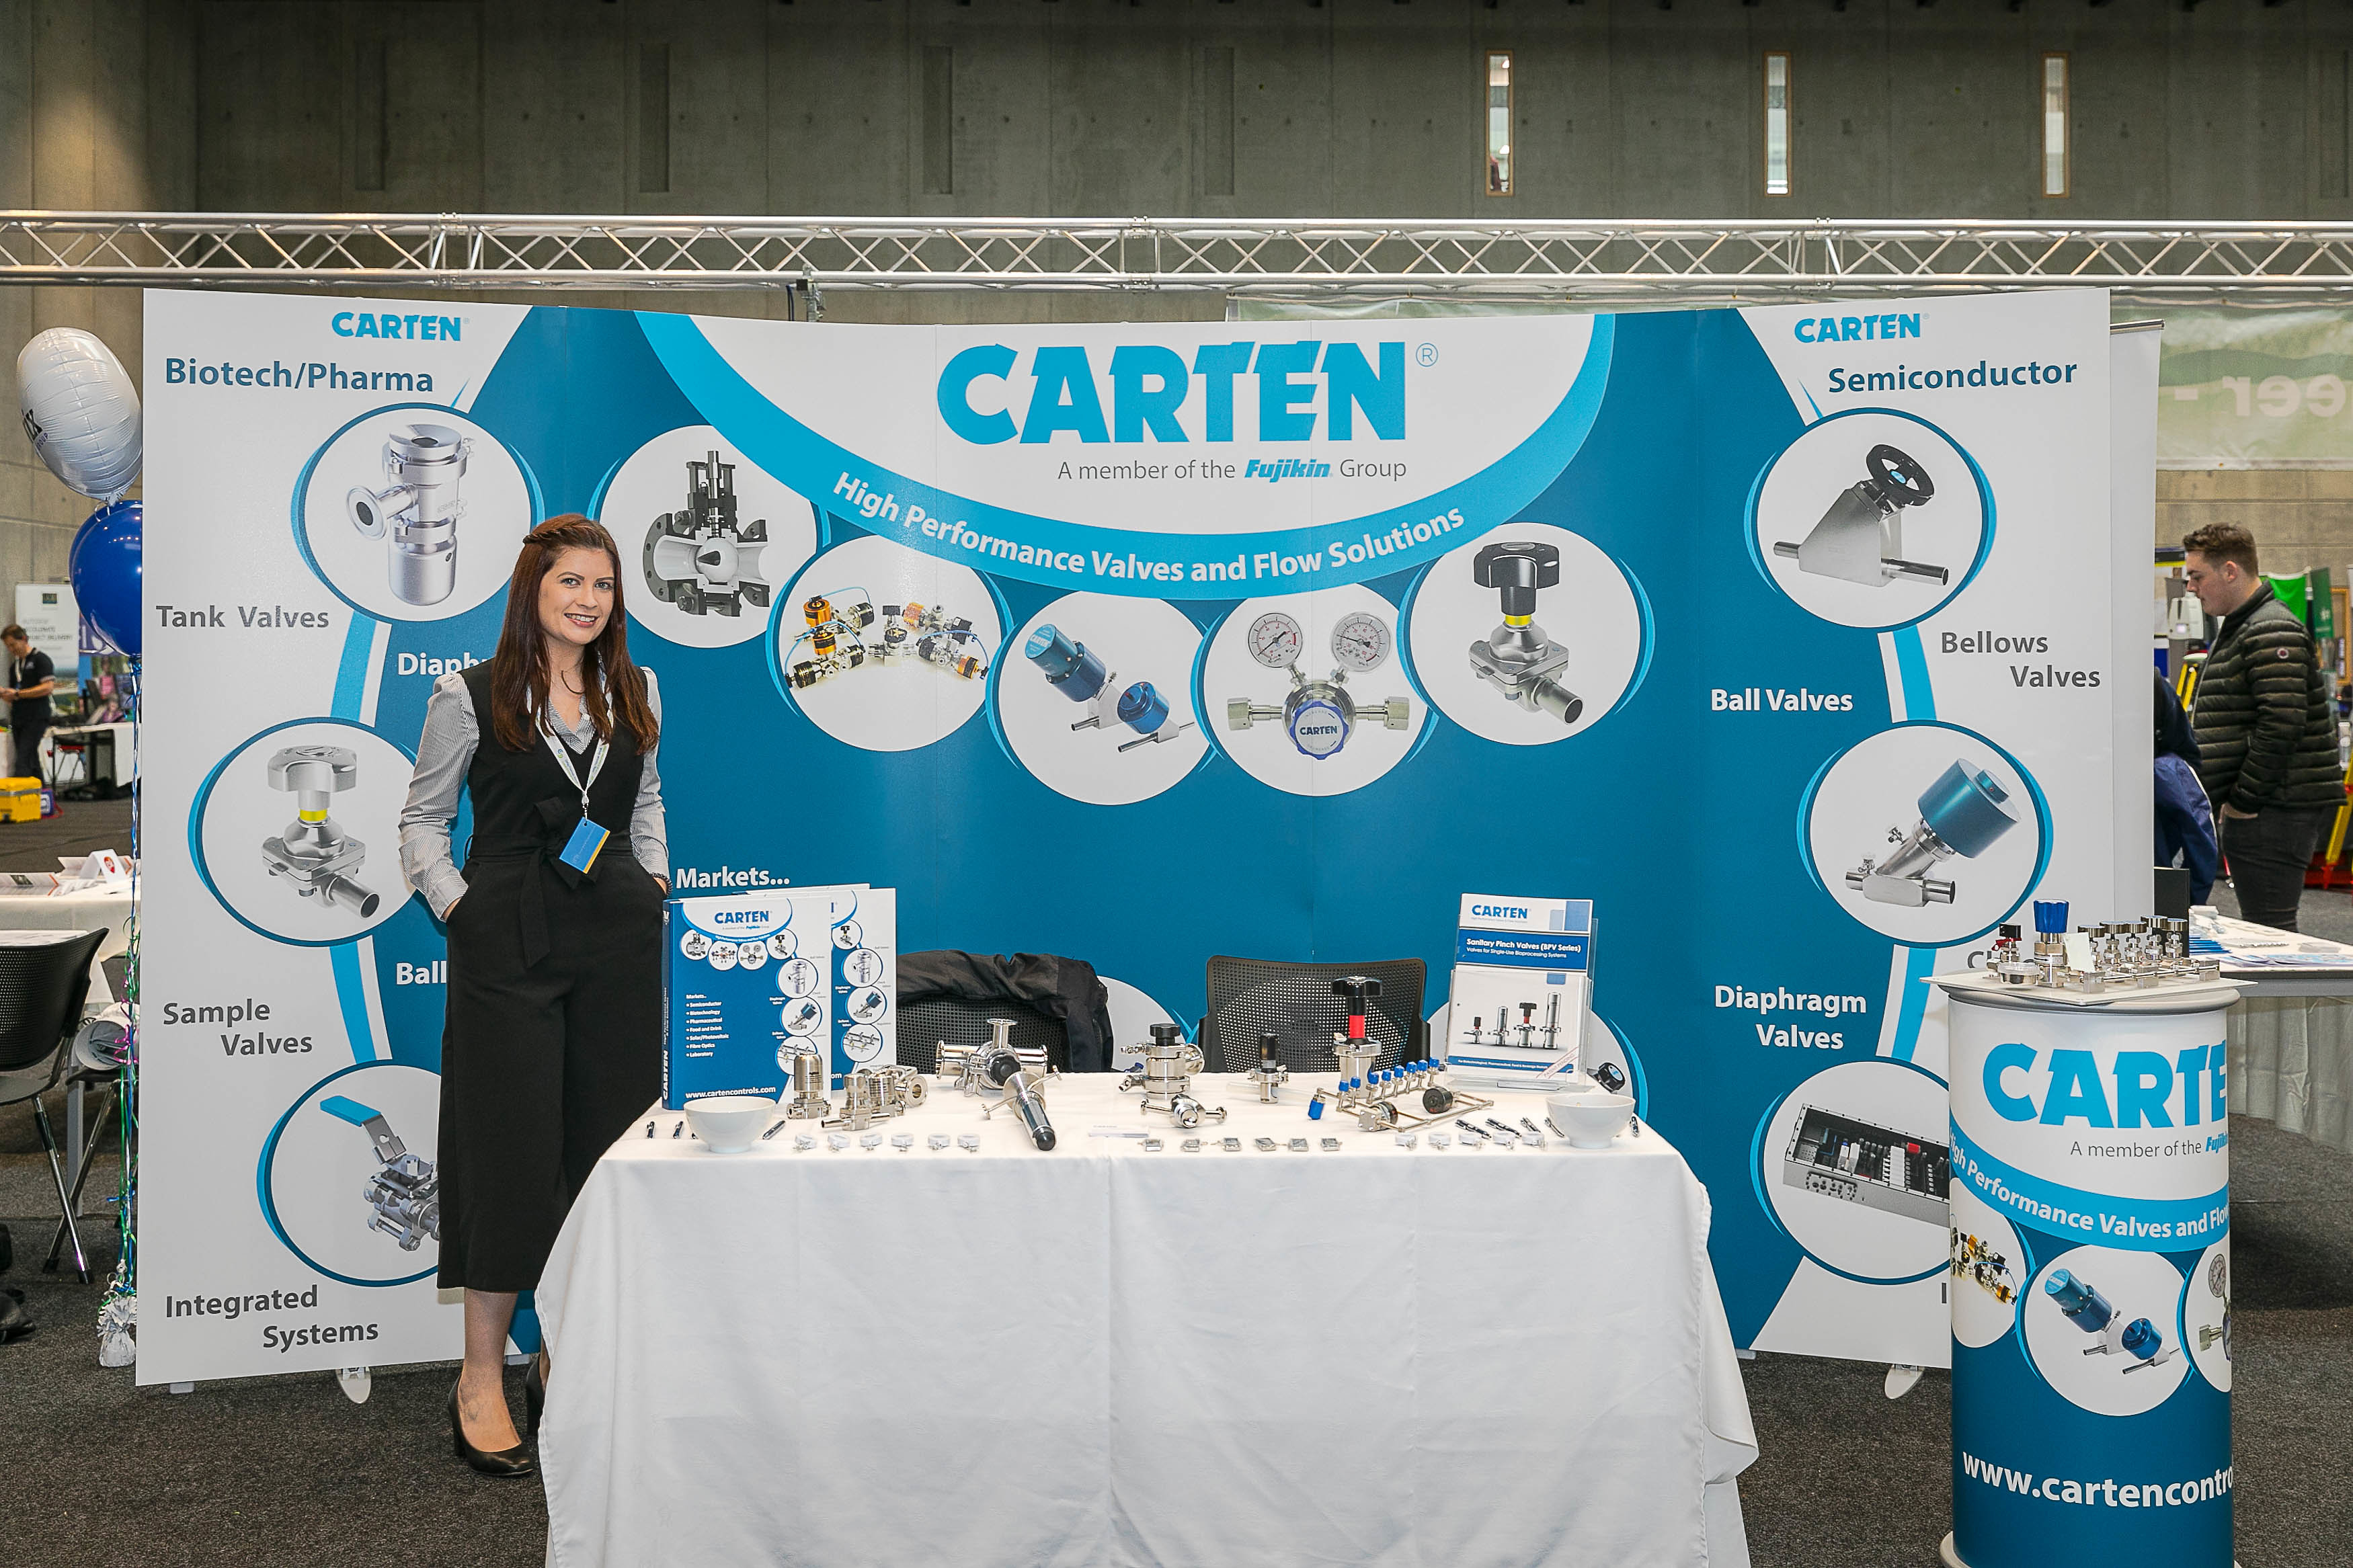 Carten exhibit at Toys4Engineers2017